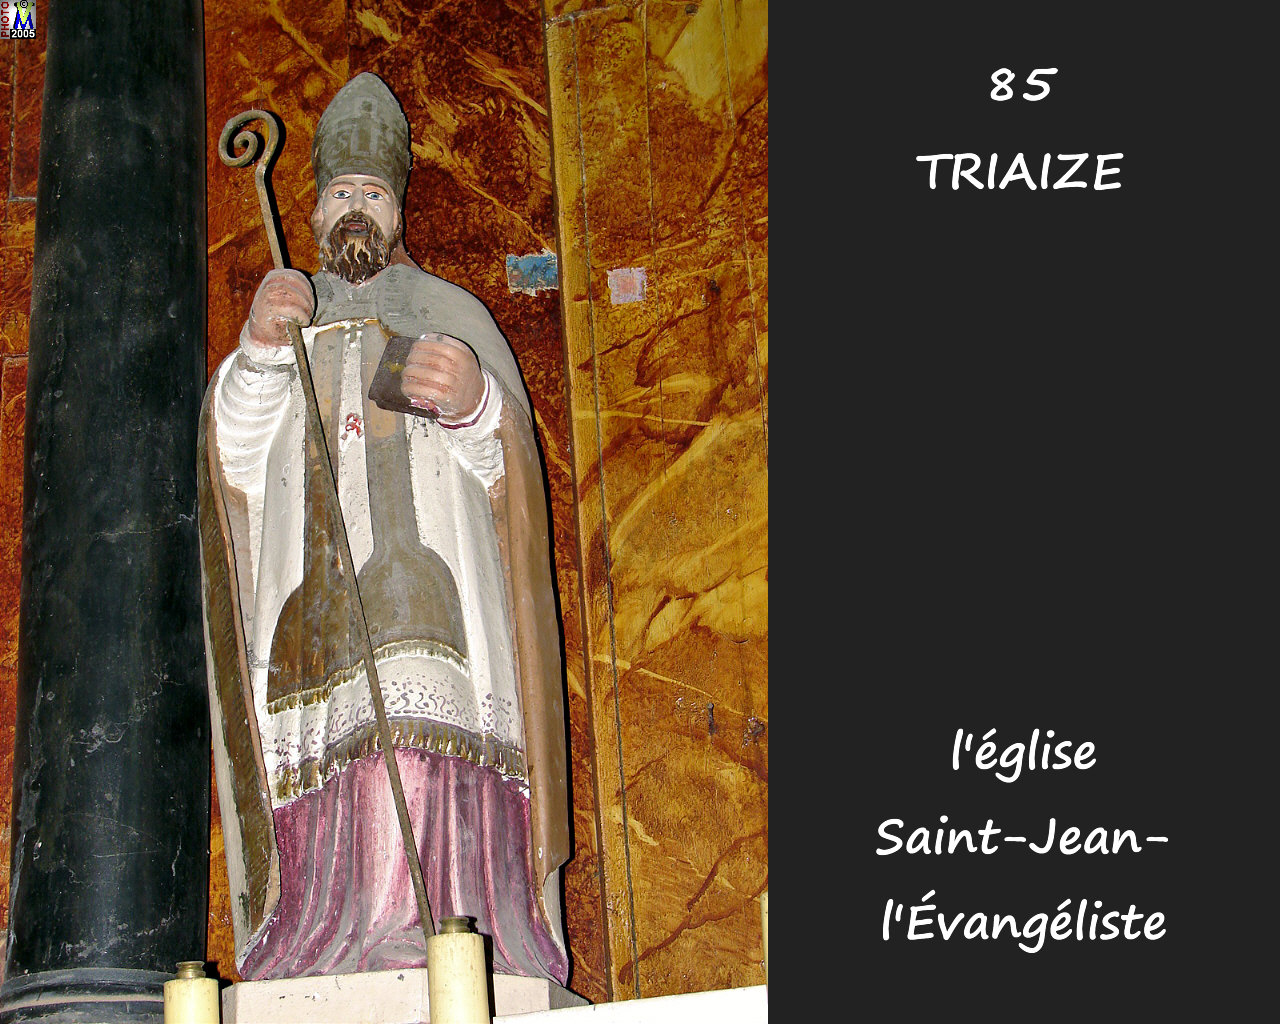 85TRIAIZE_eglise_210.jpg